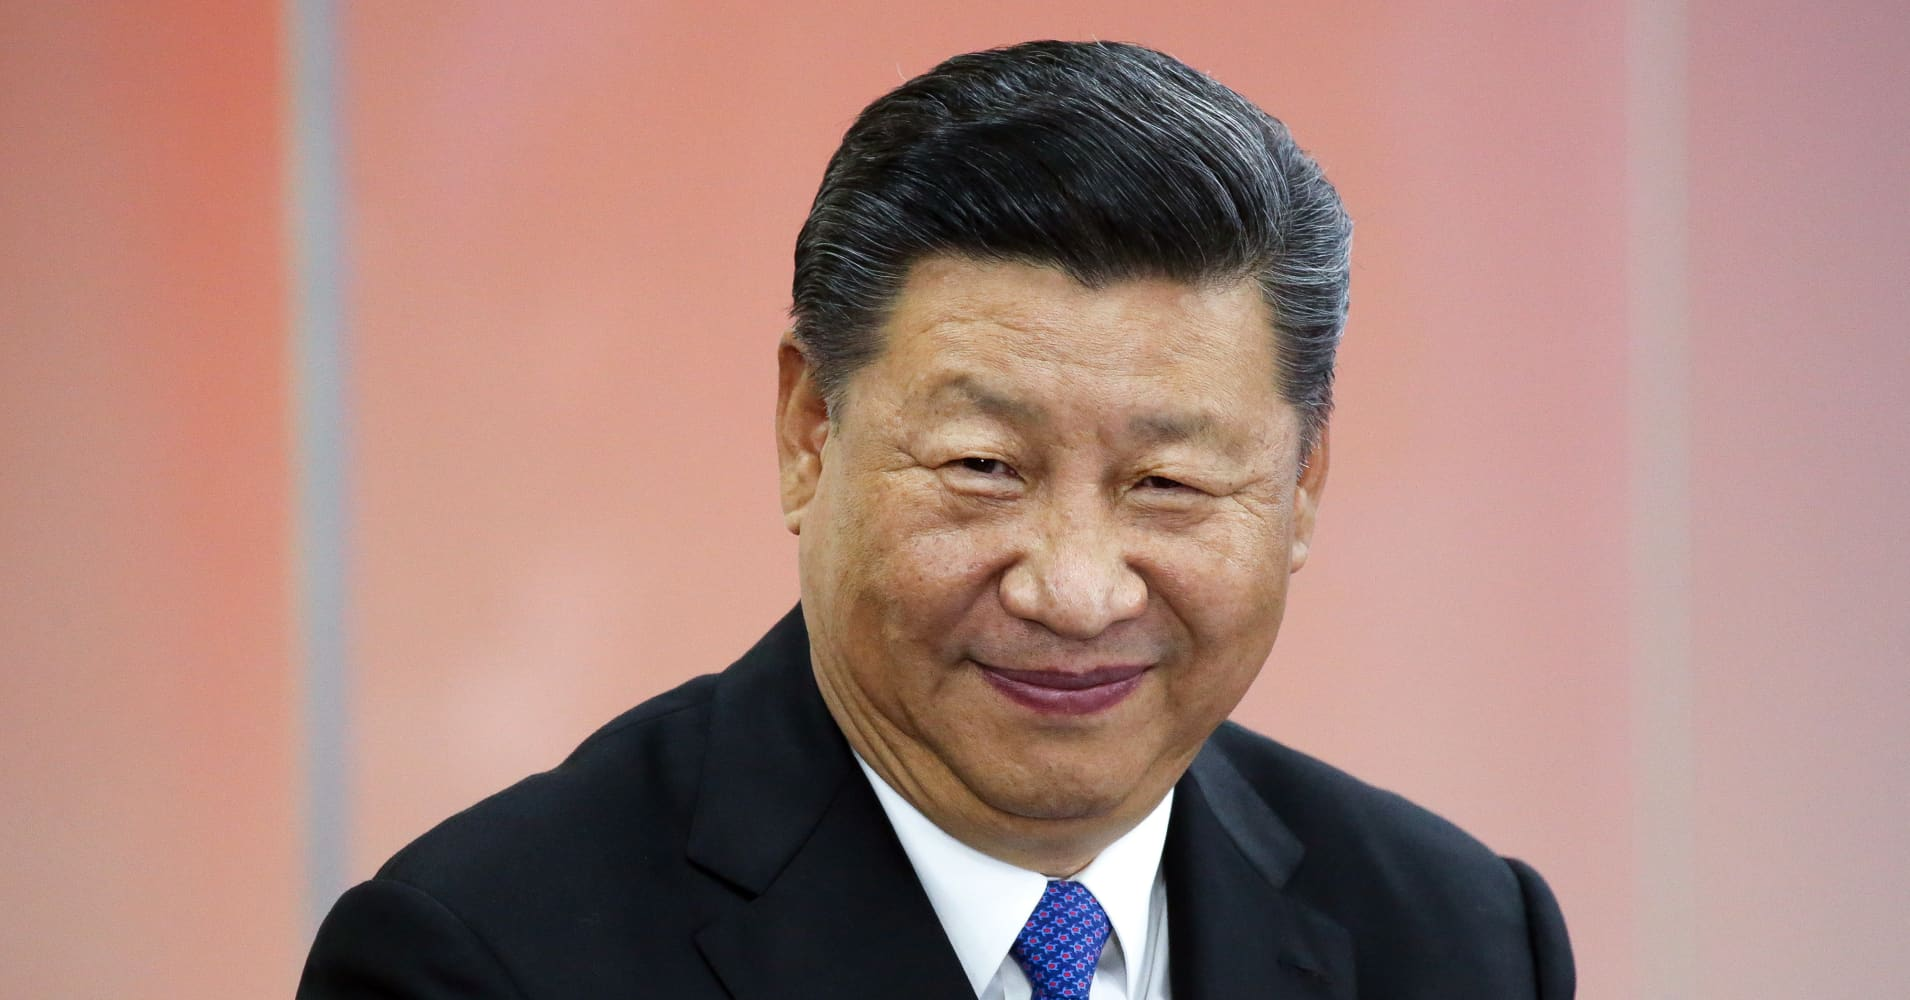 China's Xi will deliver a major speech next week as Beijing promotes itself as an importer